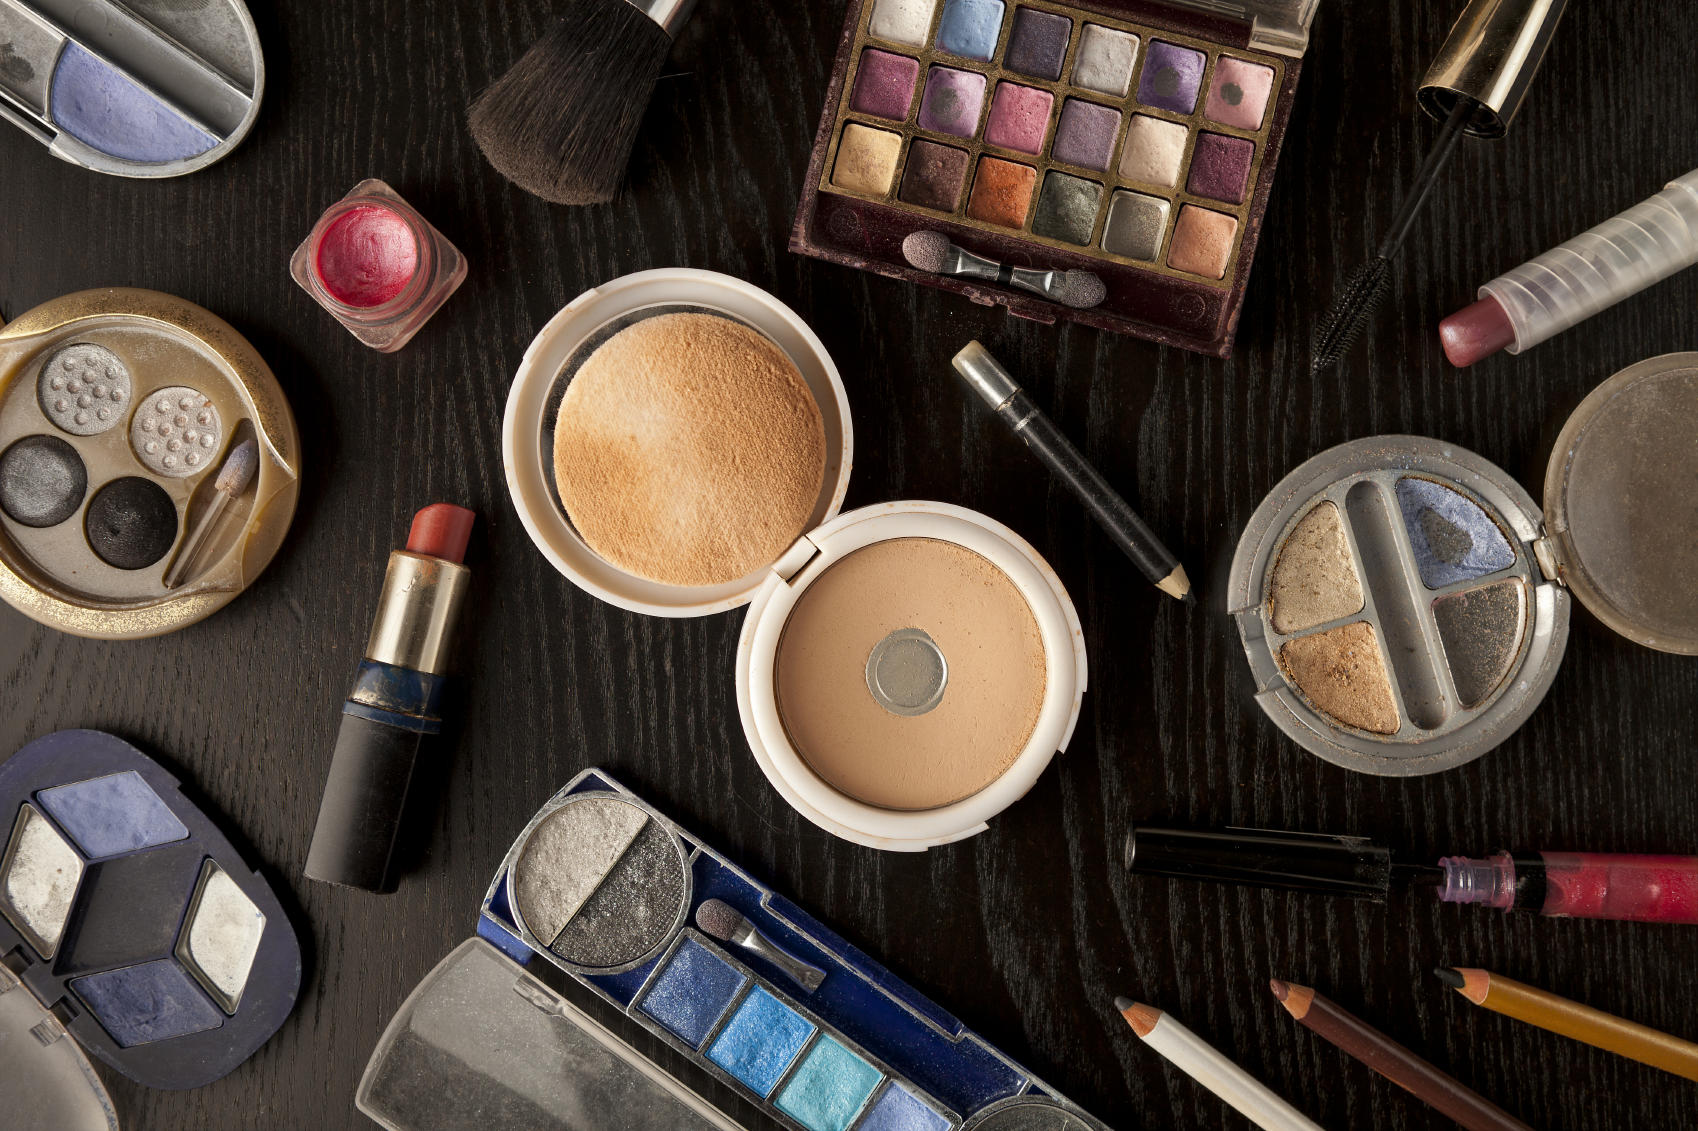 How to Know When It's Time to Throw Out Makeup